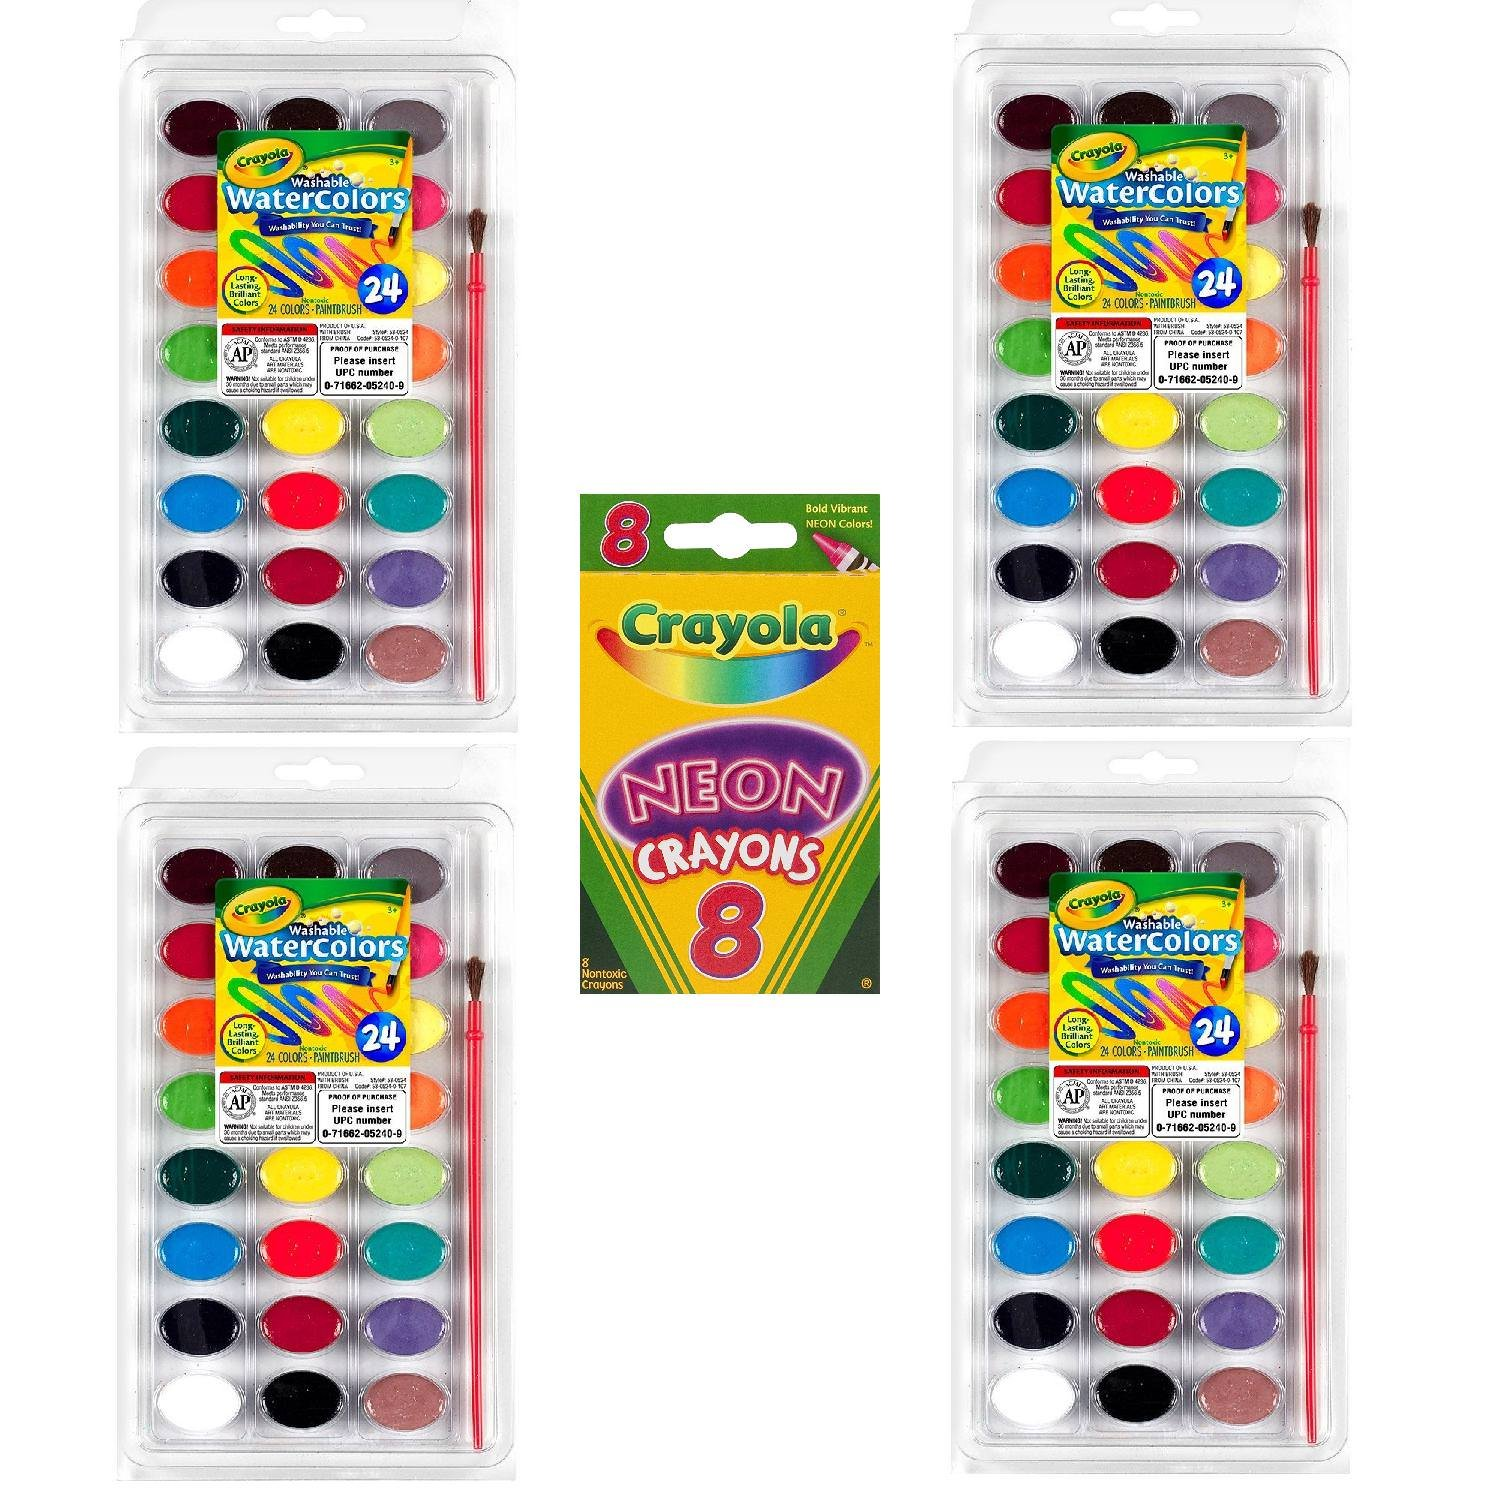 Crayola 24 Ct Washable Watercolors, Pack of 4, Bundle with Box of Neon Crayons